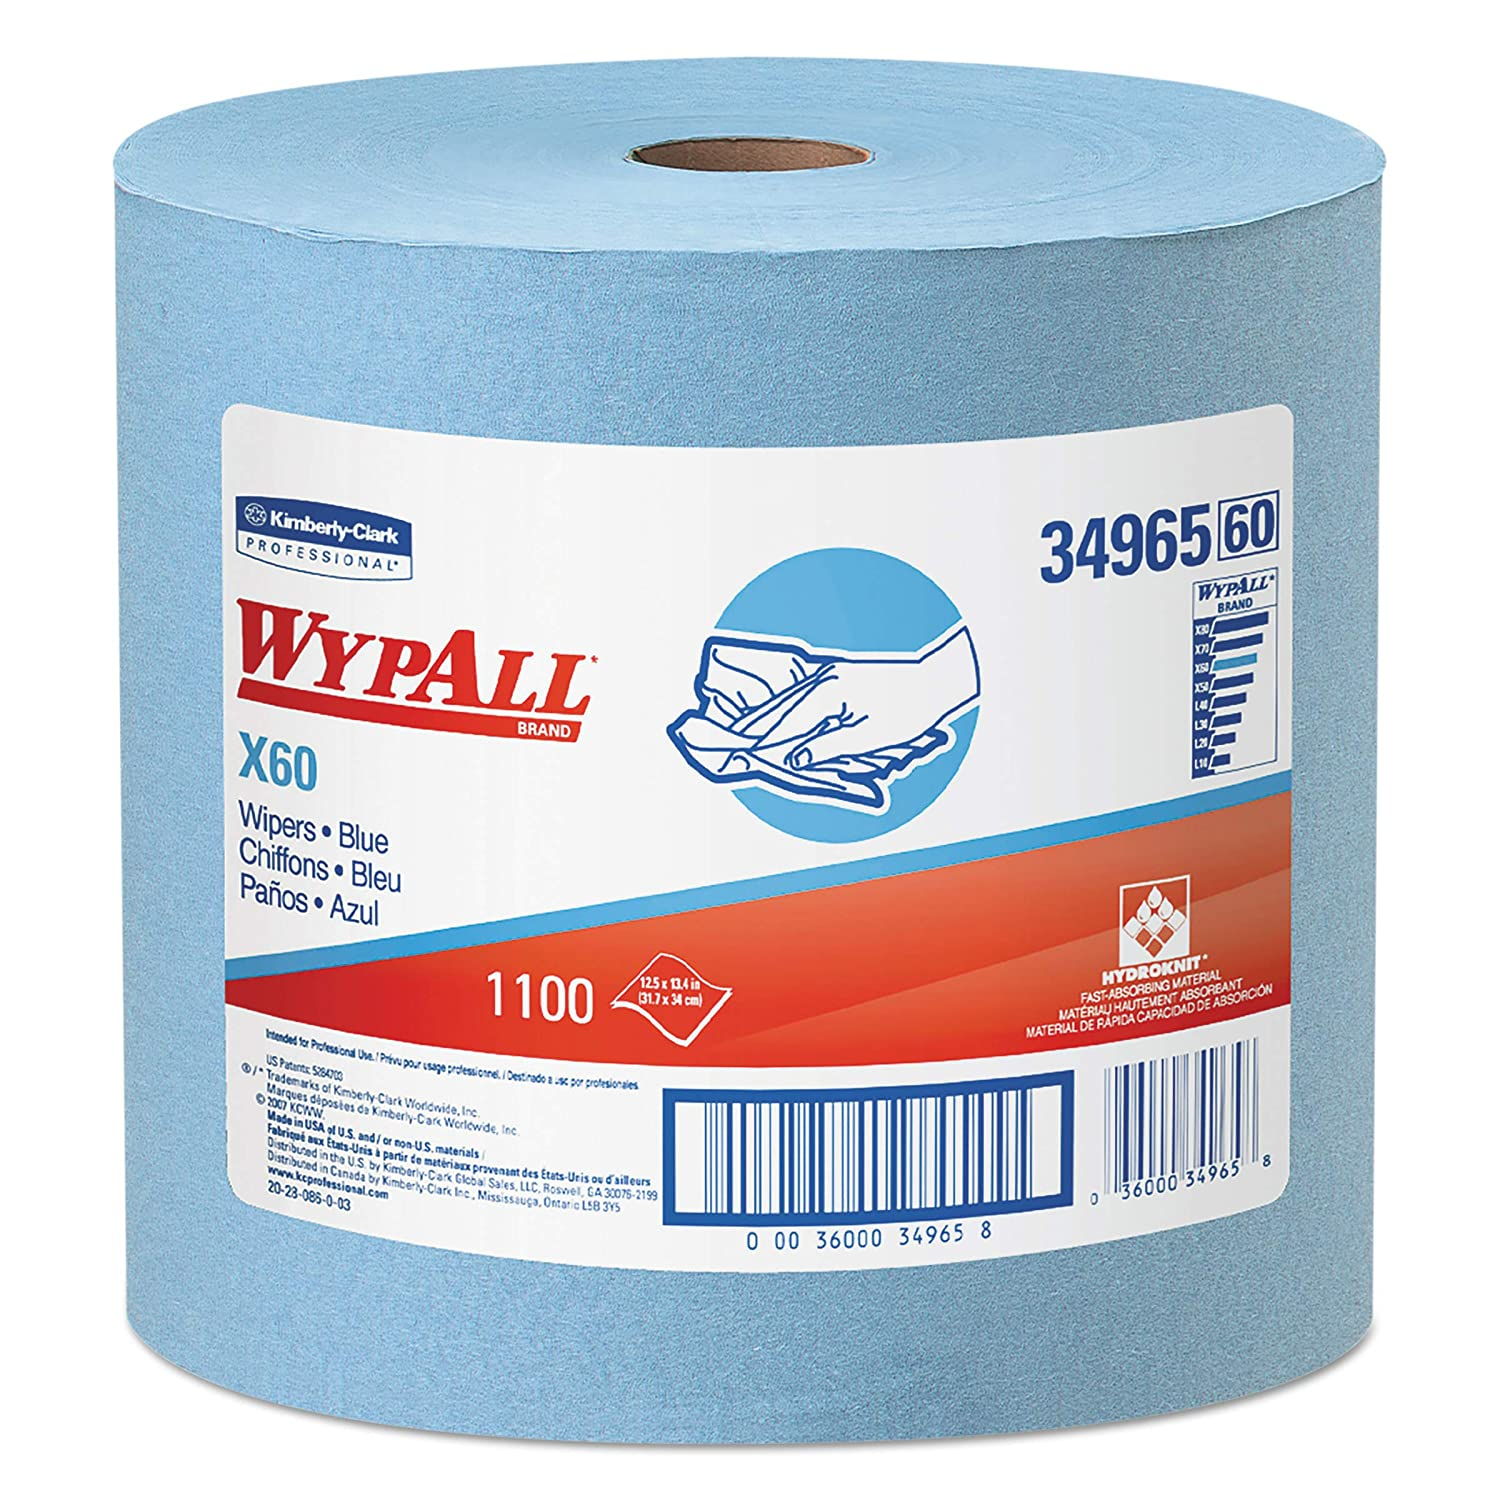 Wypall X60 Reusable Cloths (34965), Blue, Jumbo Roll, 1100 Sheets / Roll, 1 Roll / Case